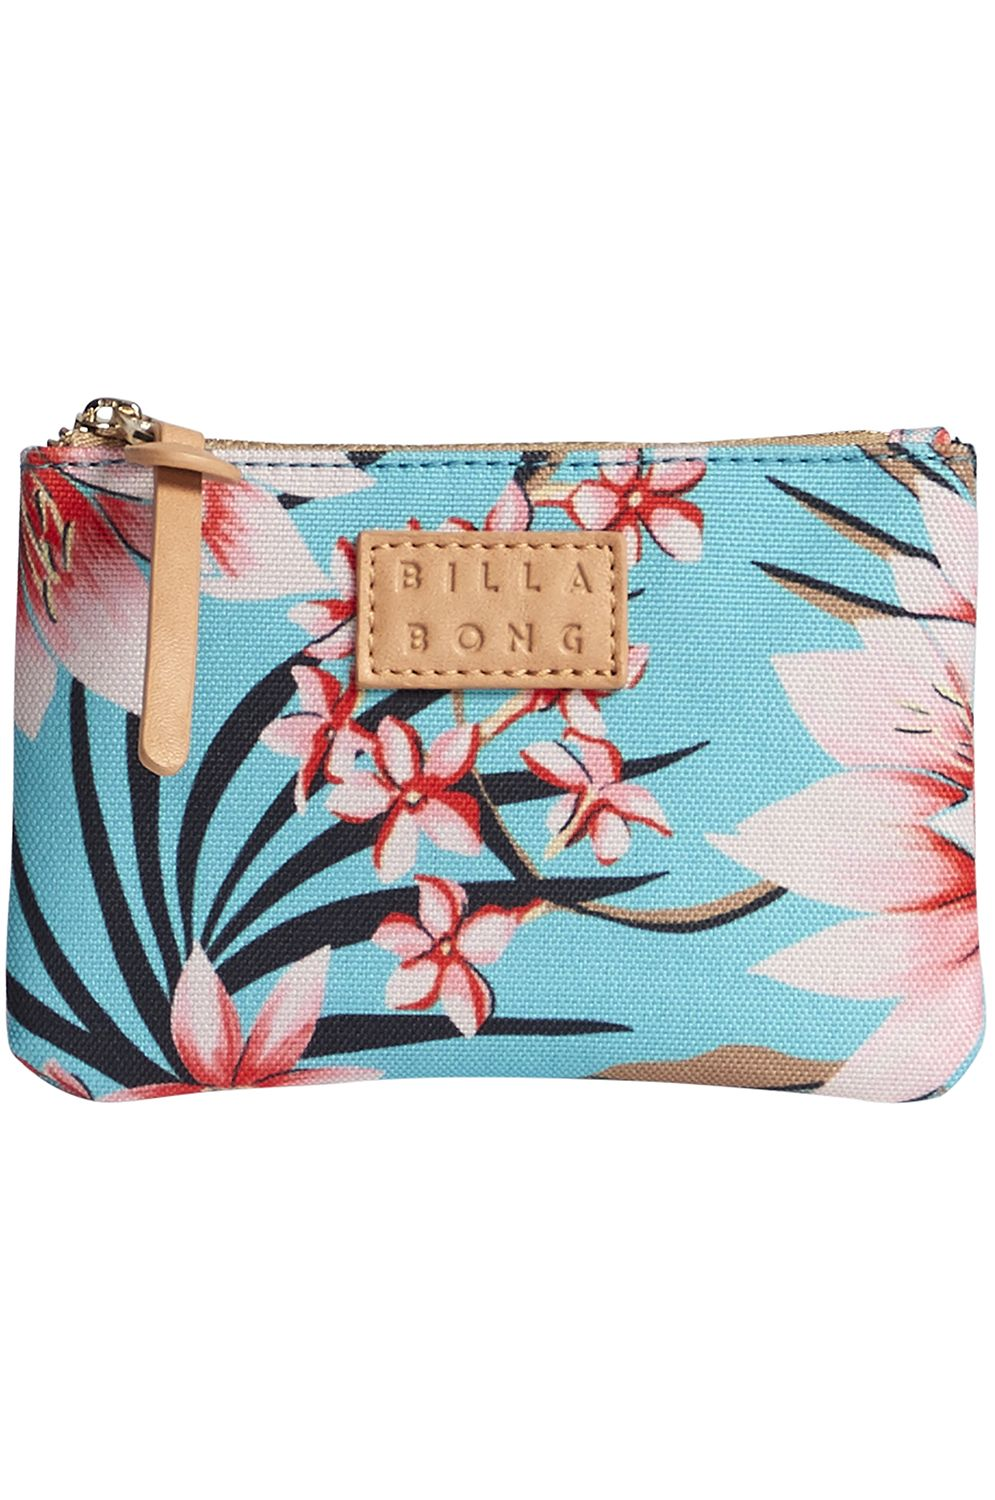 Carteira Billabong TINY CASE BEACH BAZAAR Seafoam